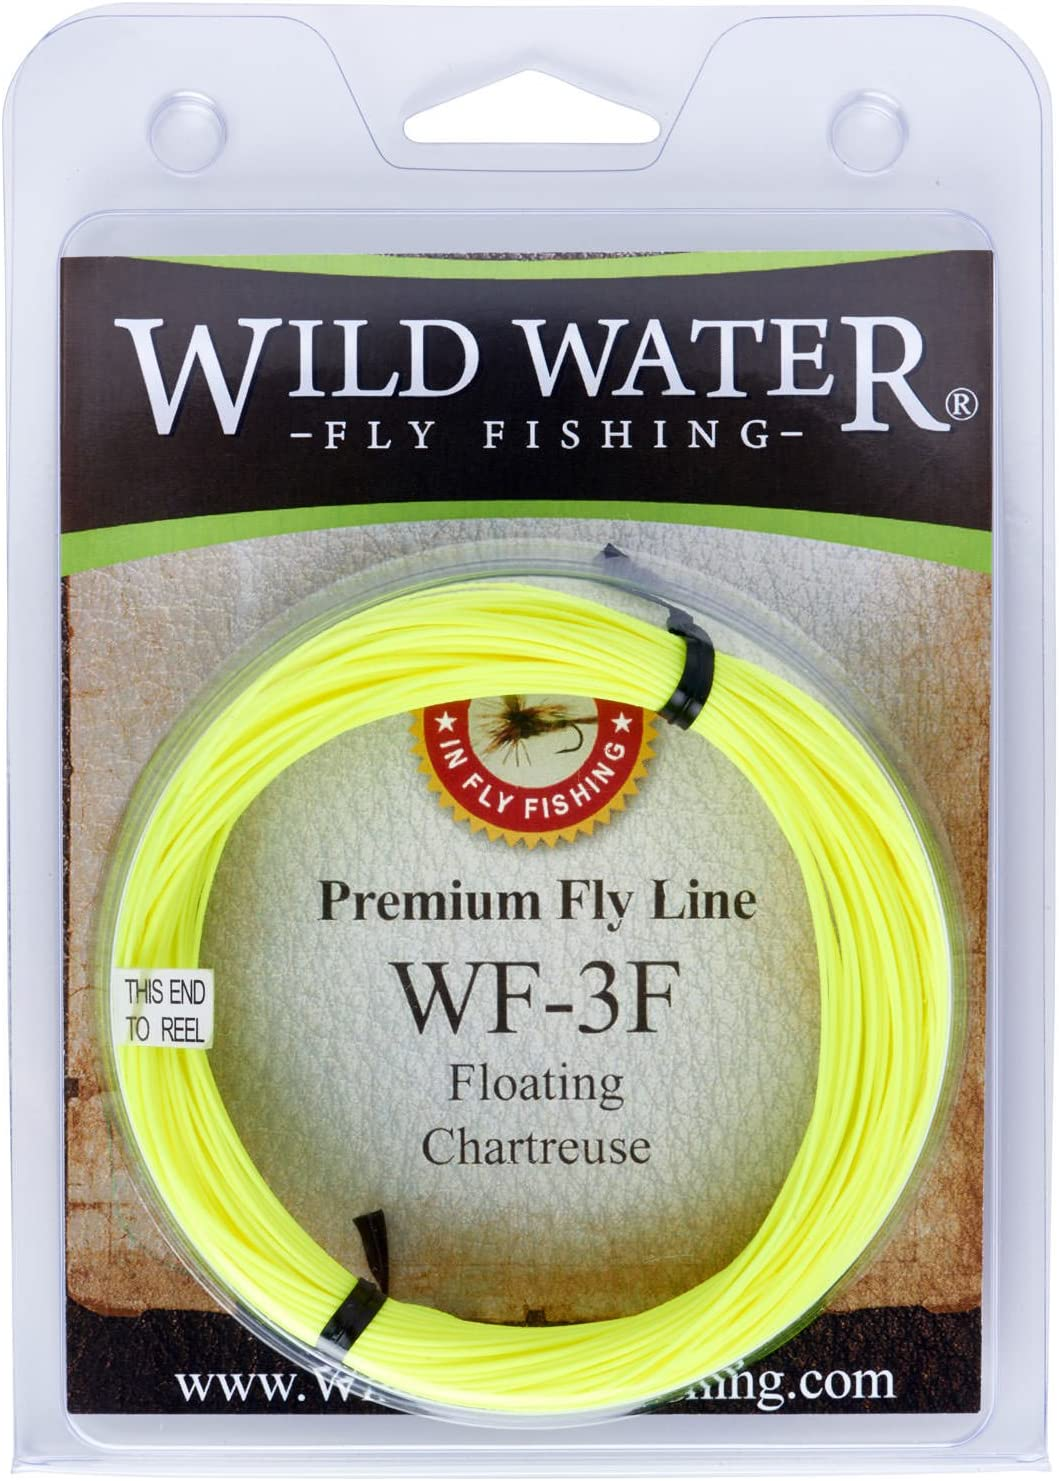 Wild Water Fly Fishing Weight Floating Max 69% OFF Forward Chartreu Limited time trial price 3-Weight